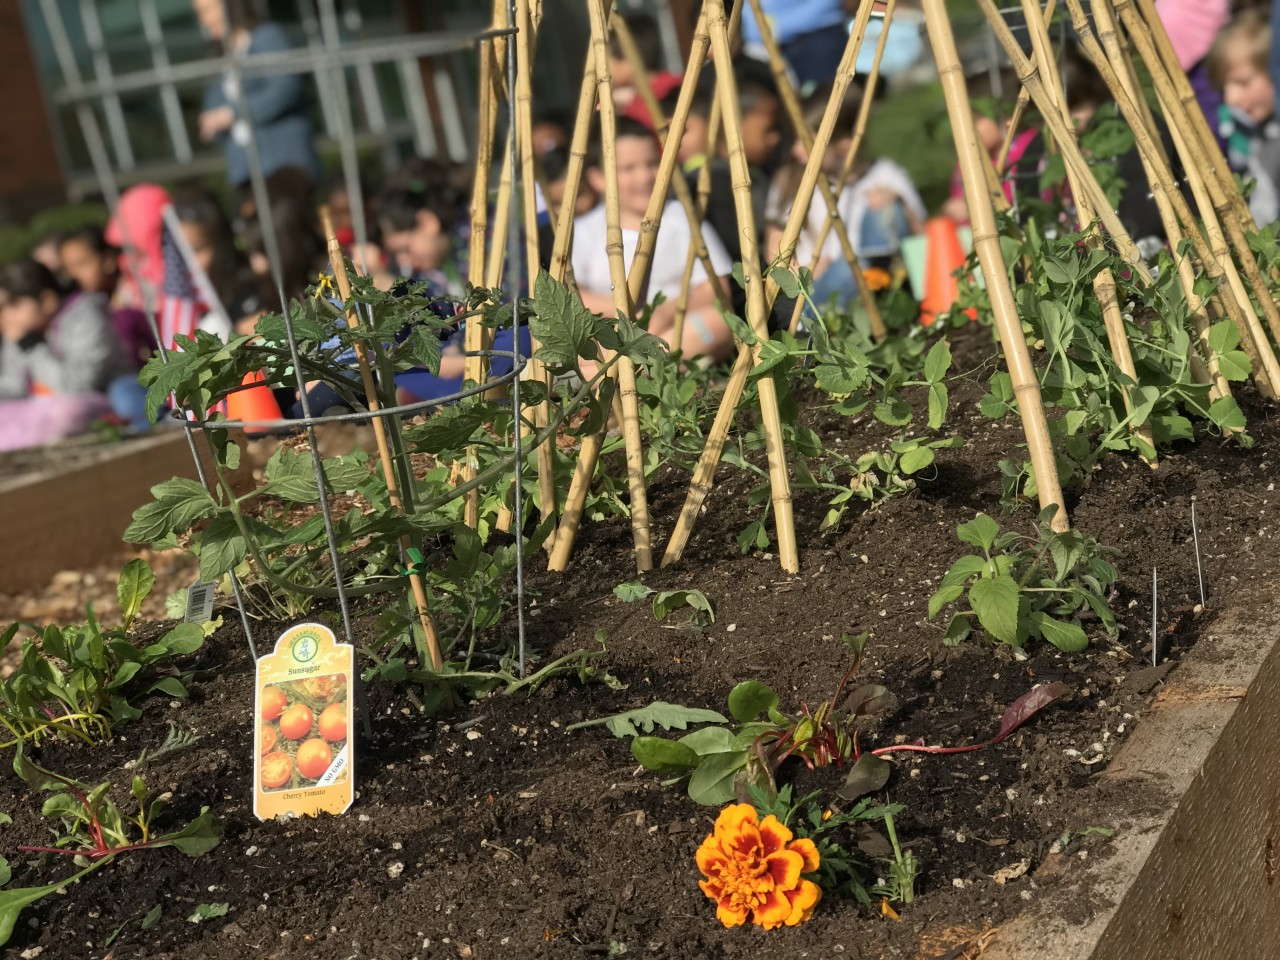 Washington Elementary starts a school garden and brings a community together